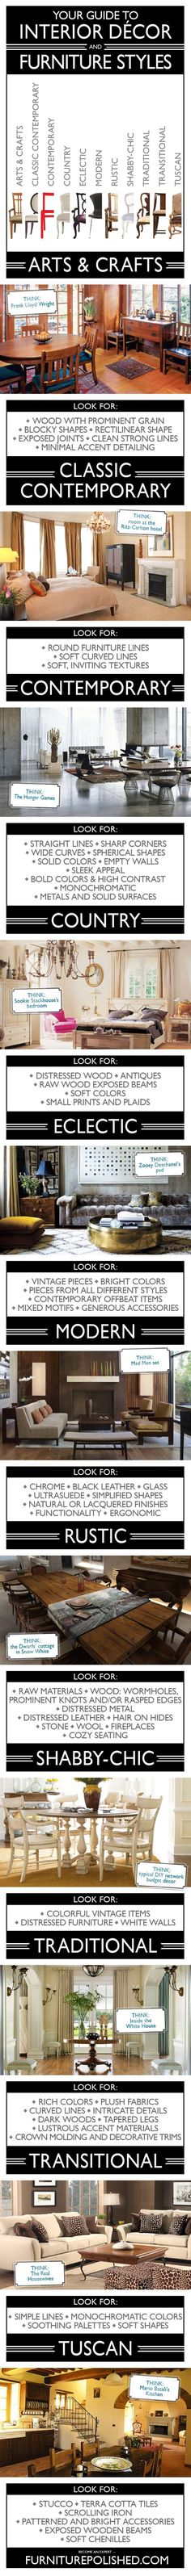 40. Decide on a furniture and interior design style for your home - 50 Amazingly Clever Cheat Sheets To Simplify Home Decorating Projects